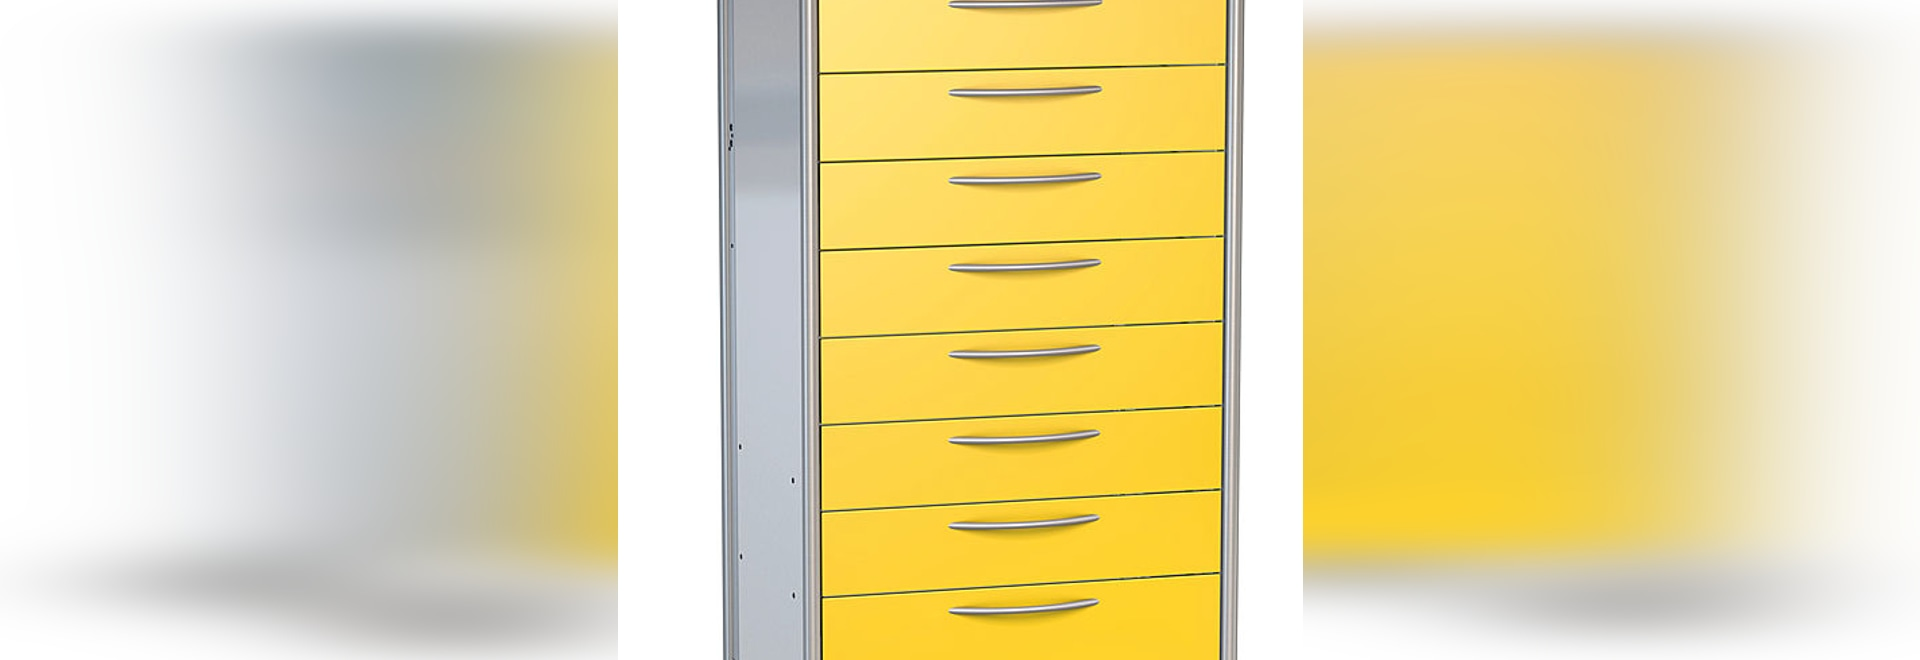 ISO Tray Cart - 1 Row for trays 600 x 400 mm by HAMMERLIT